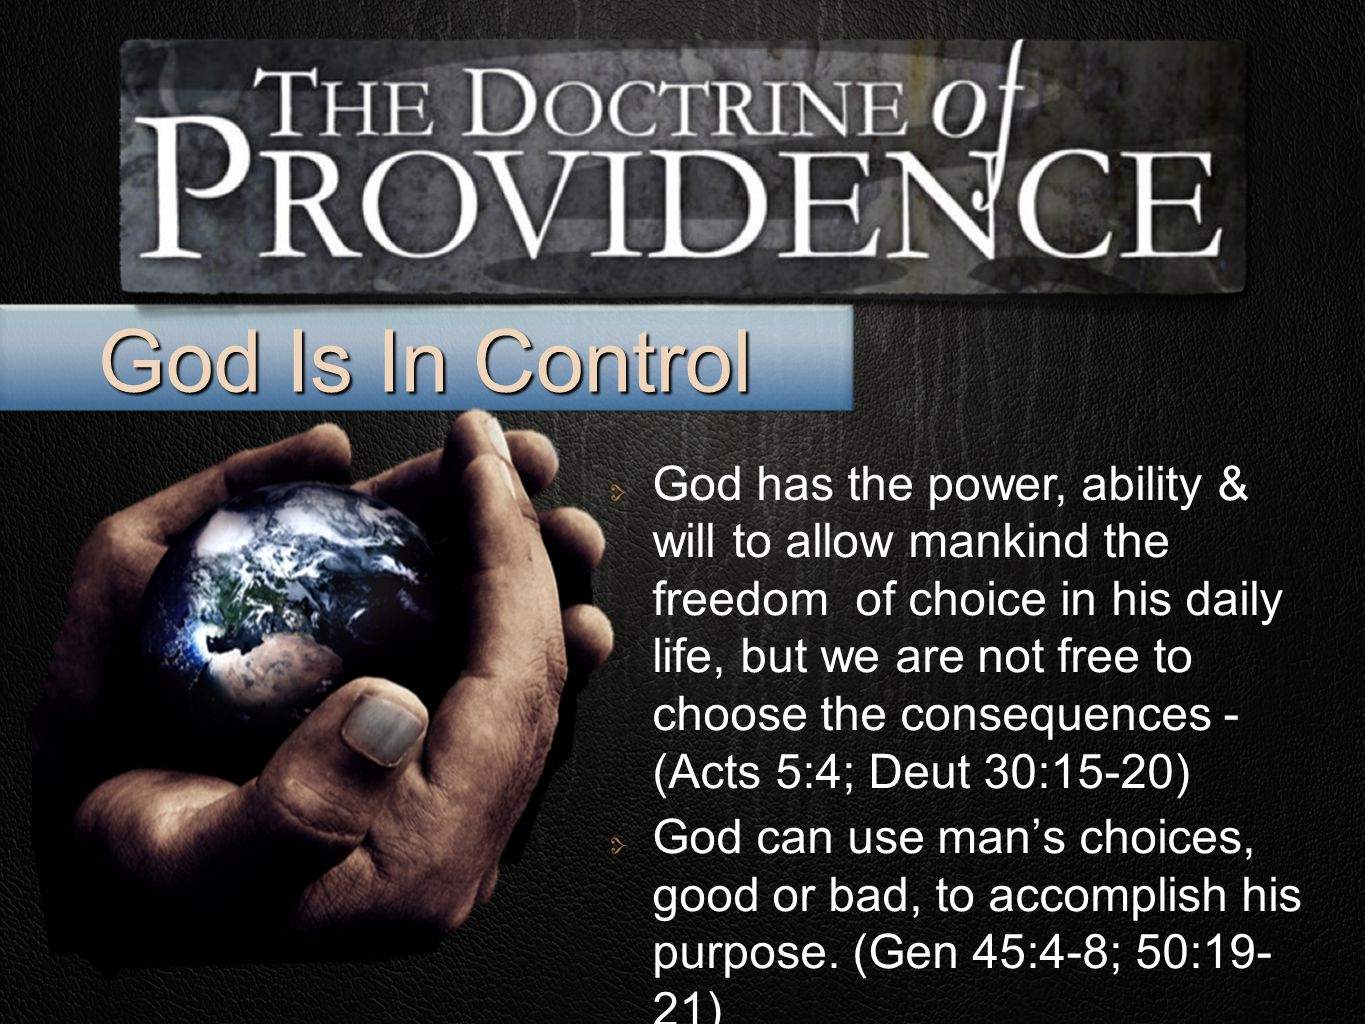 God Is In Control God has the power, ability & will to allow mankind the freedom of choice in his daily life, but we are not free to choose the consequences - (Acts 5:4; Deut 30:15-20) God can use man's choices, good or bad, to accomplish his purpose.